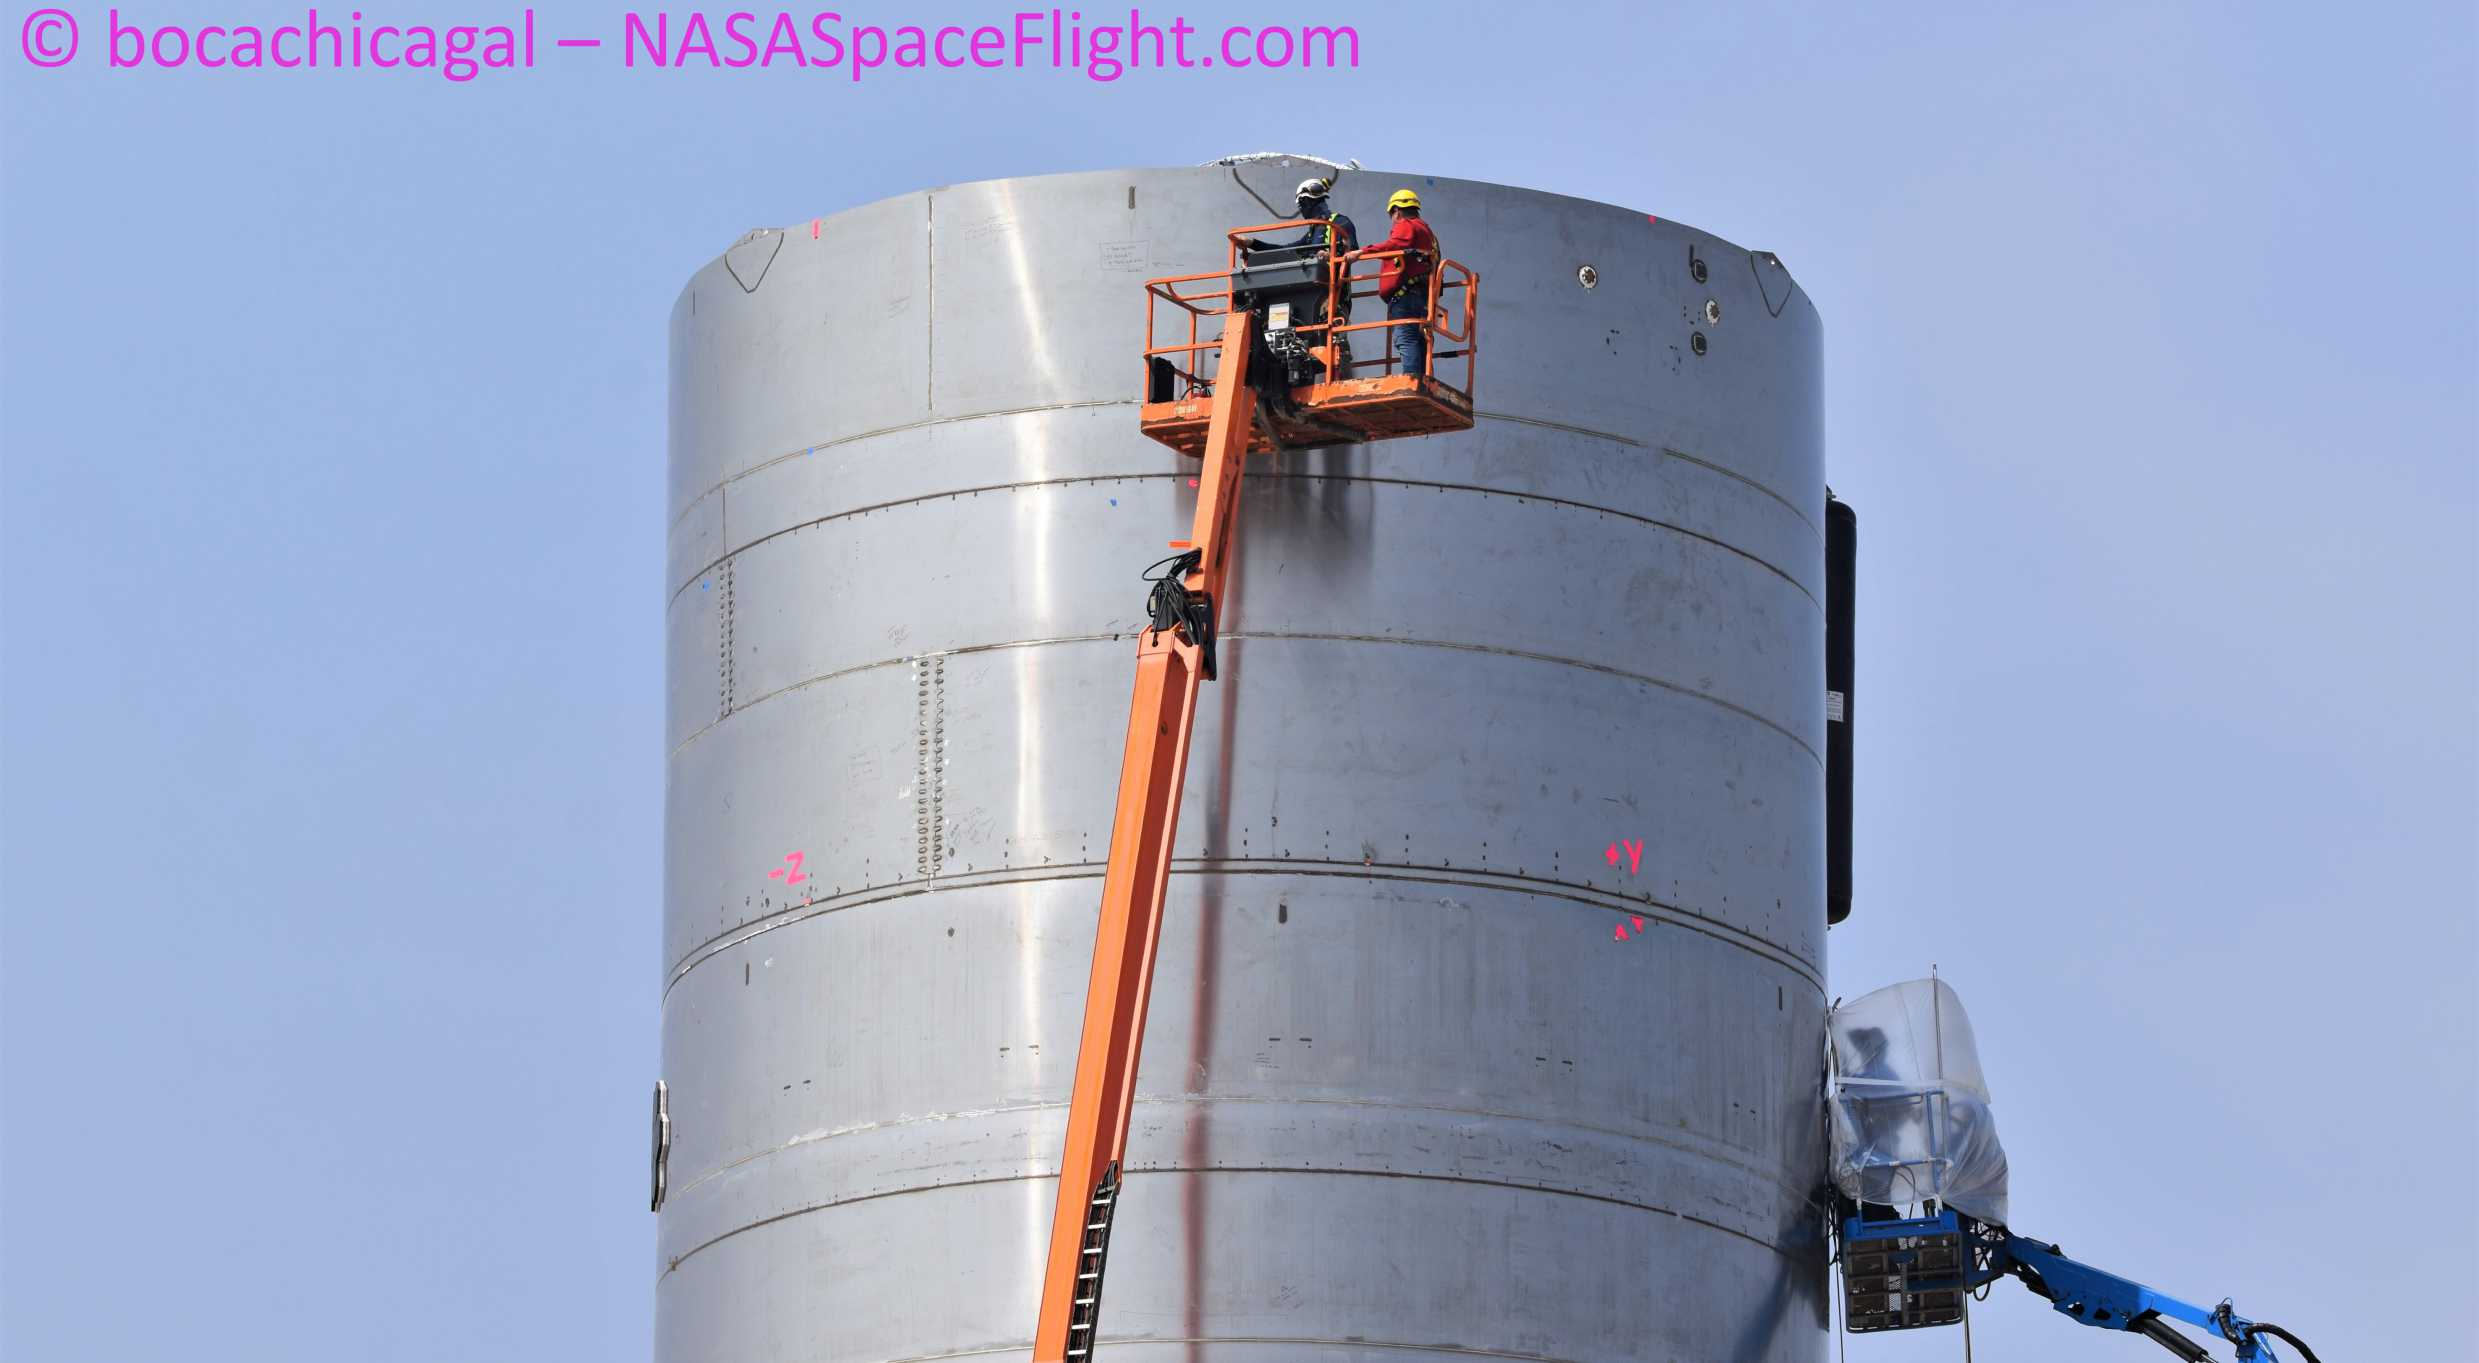 Starship Boca Chica 042520 (NASASpaceflight – bocachicagal) SN4 pad work 6 crop (c)